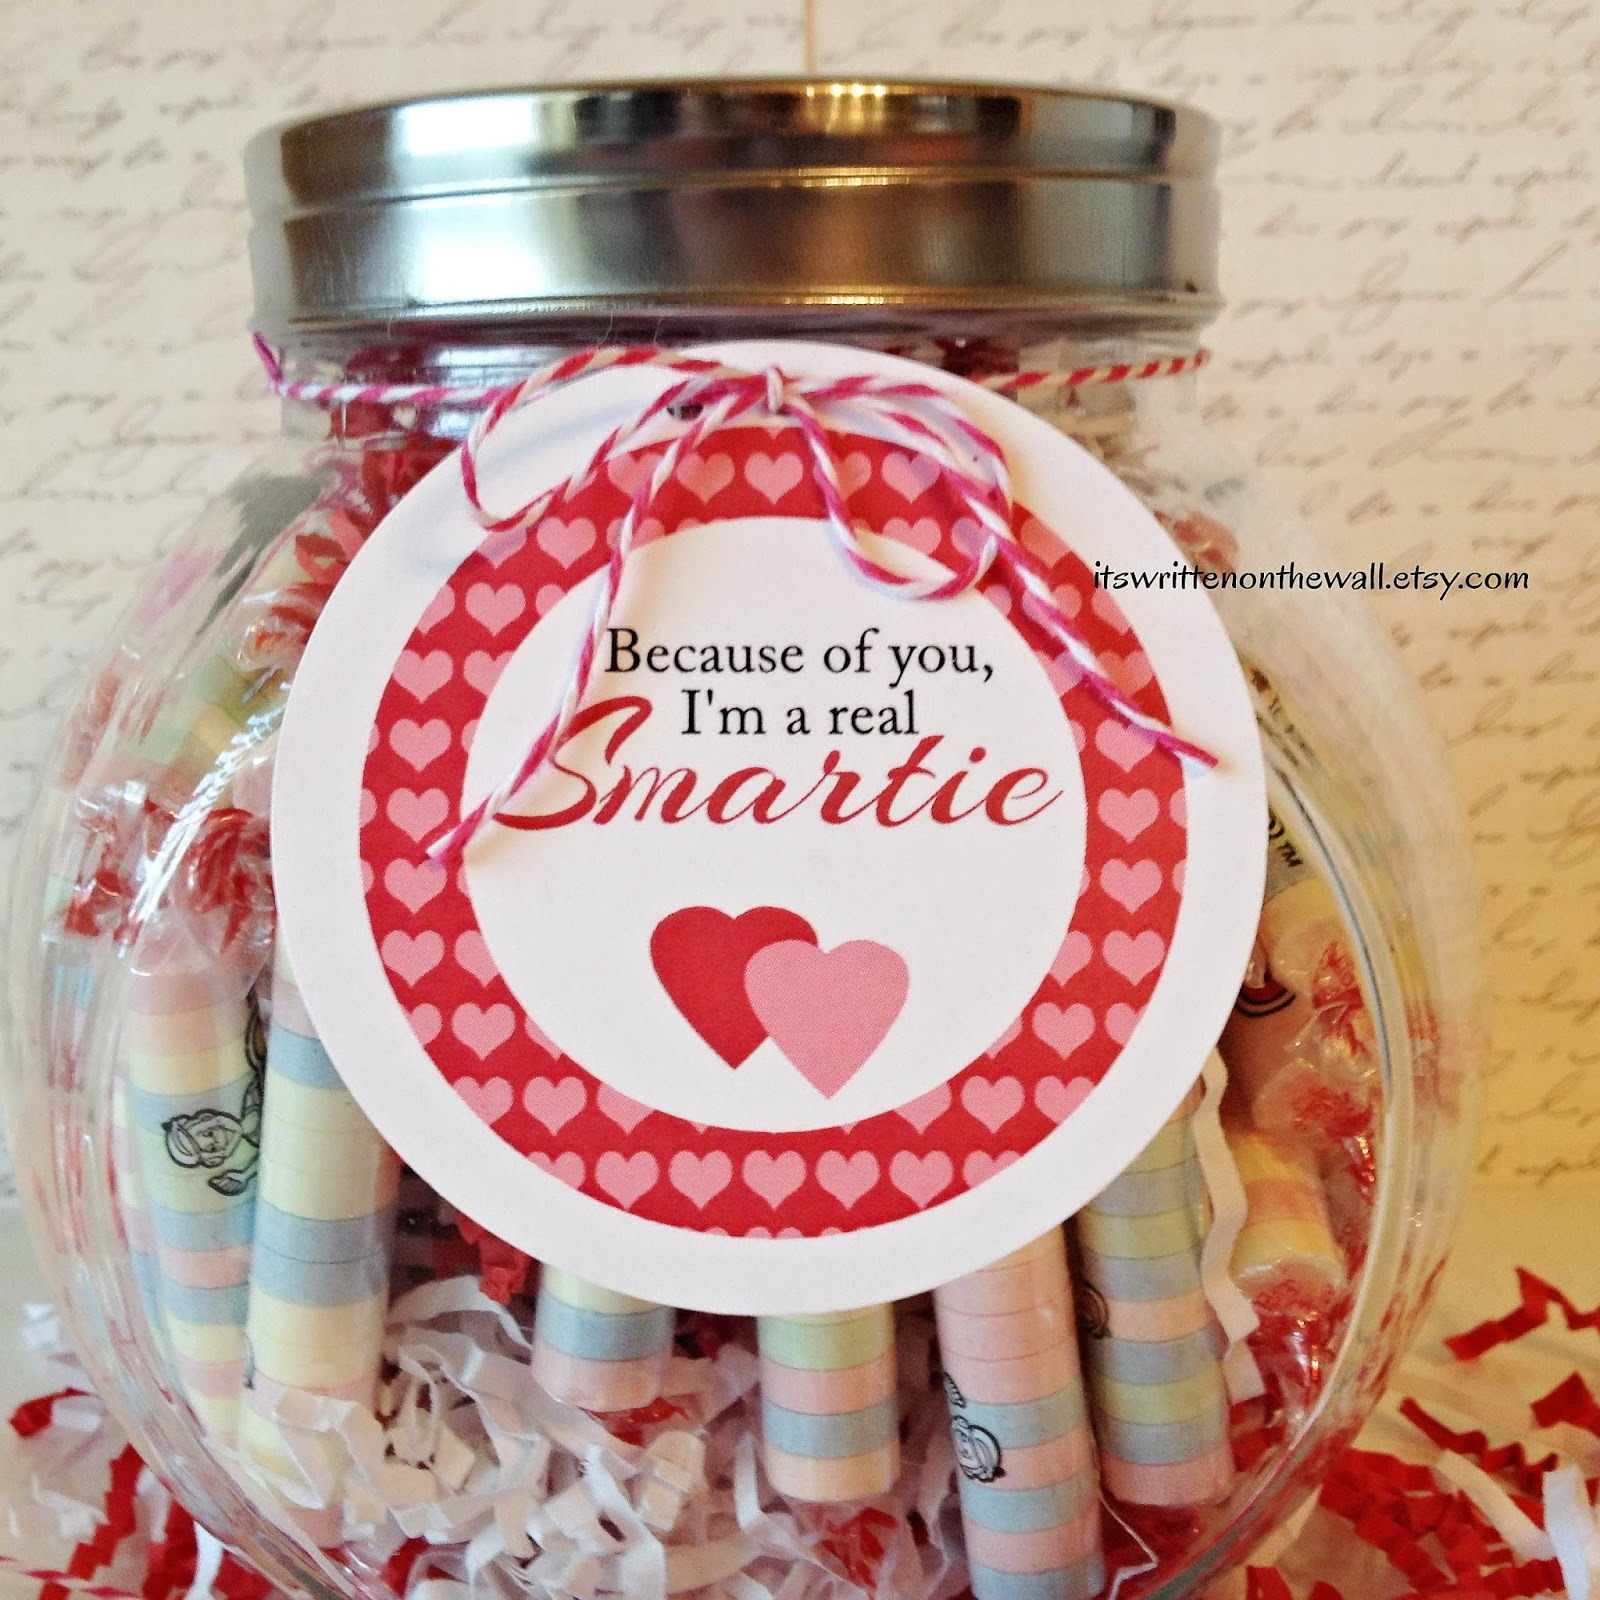 It S Written On The Wall Because Of You I M A Smartie Valentine S